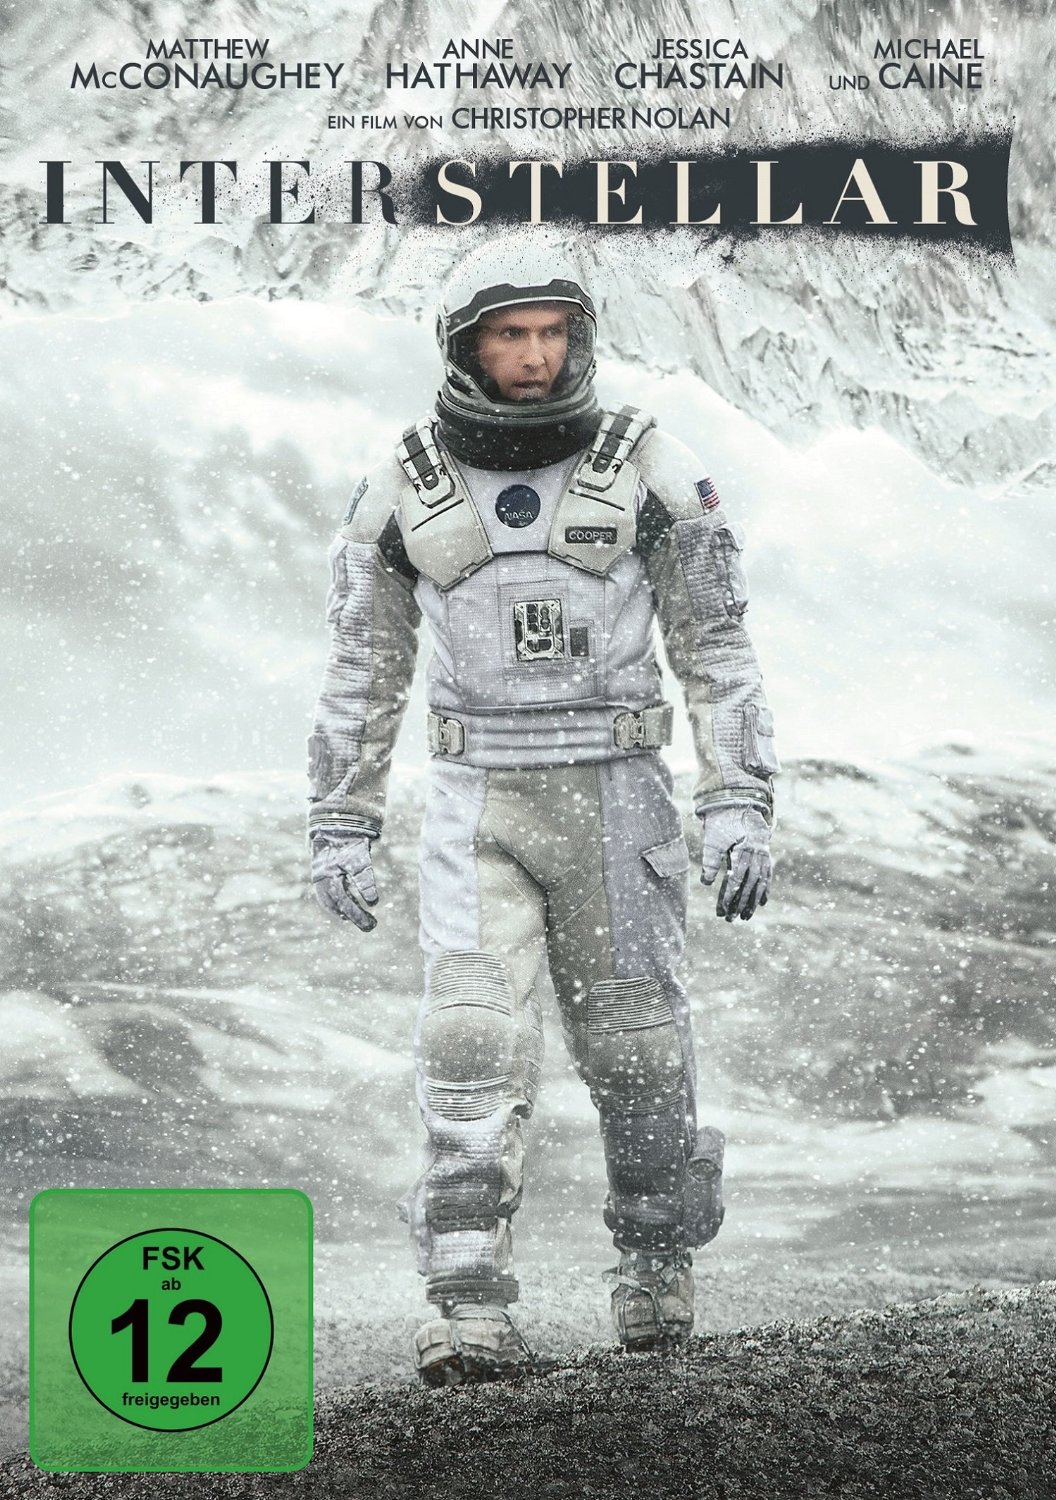 DVD-Cover von Interstellar